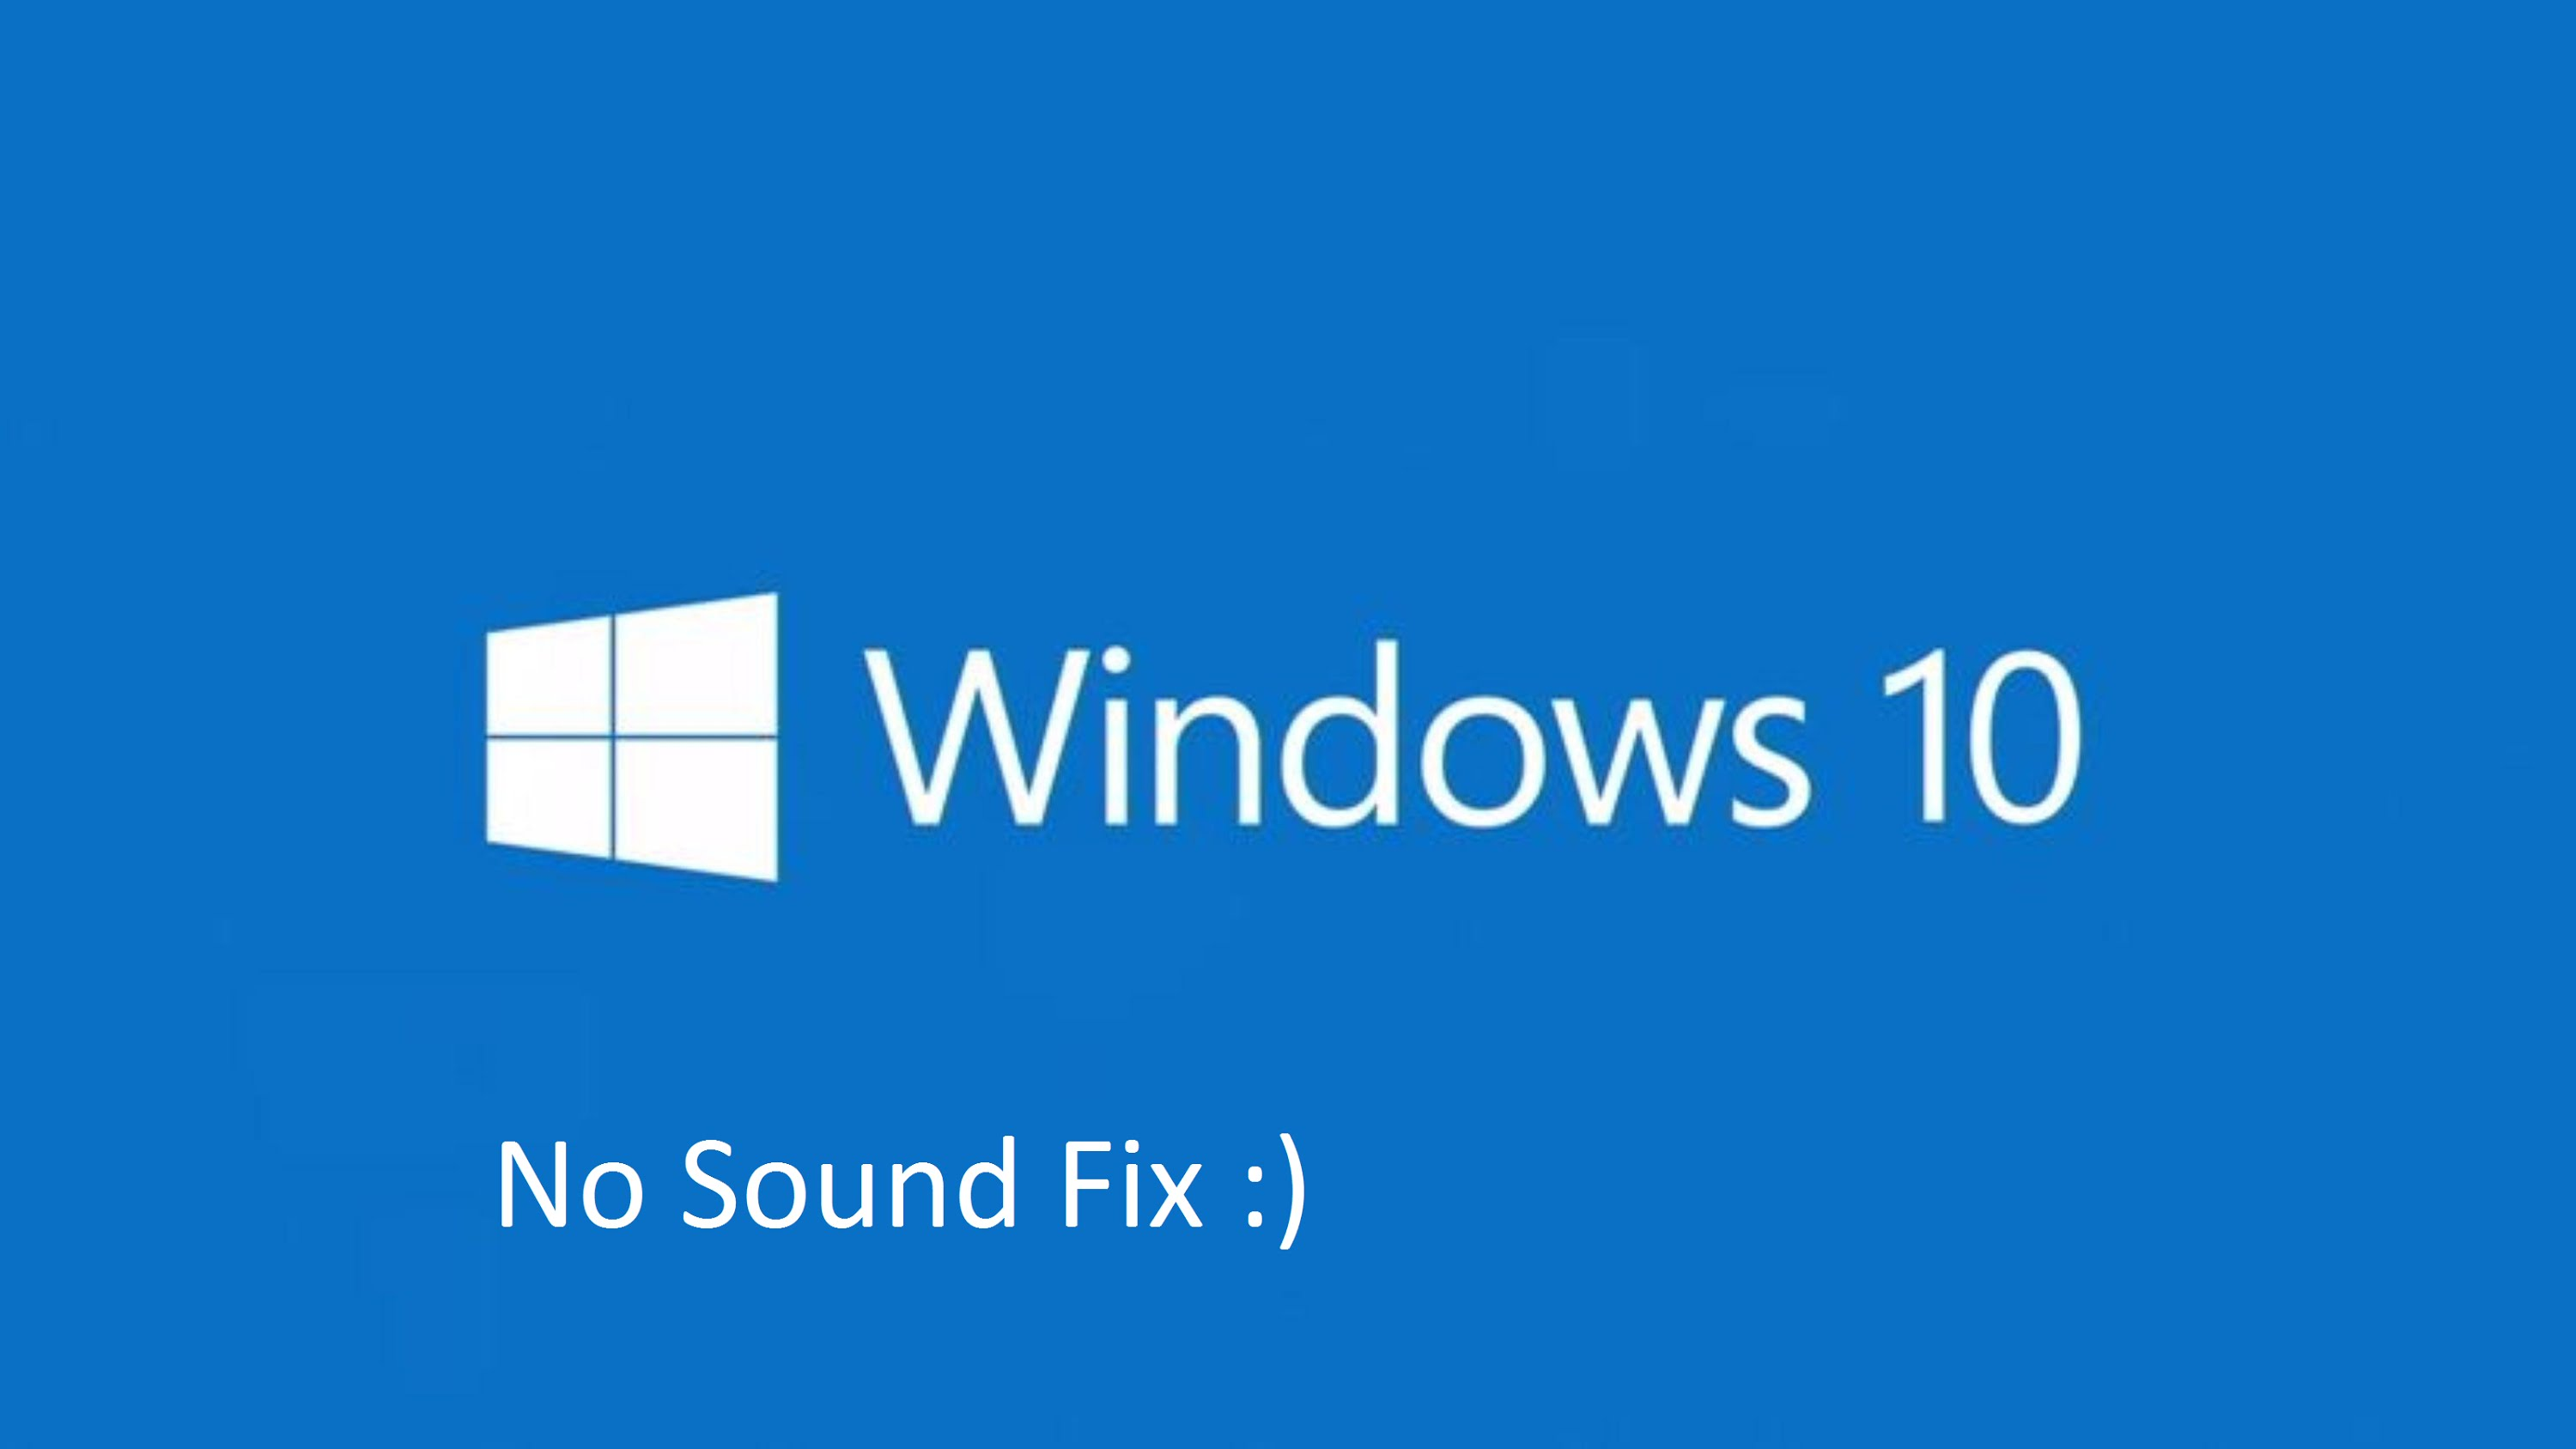 Audio service is not running on Windows 7/10 what to do?